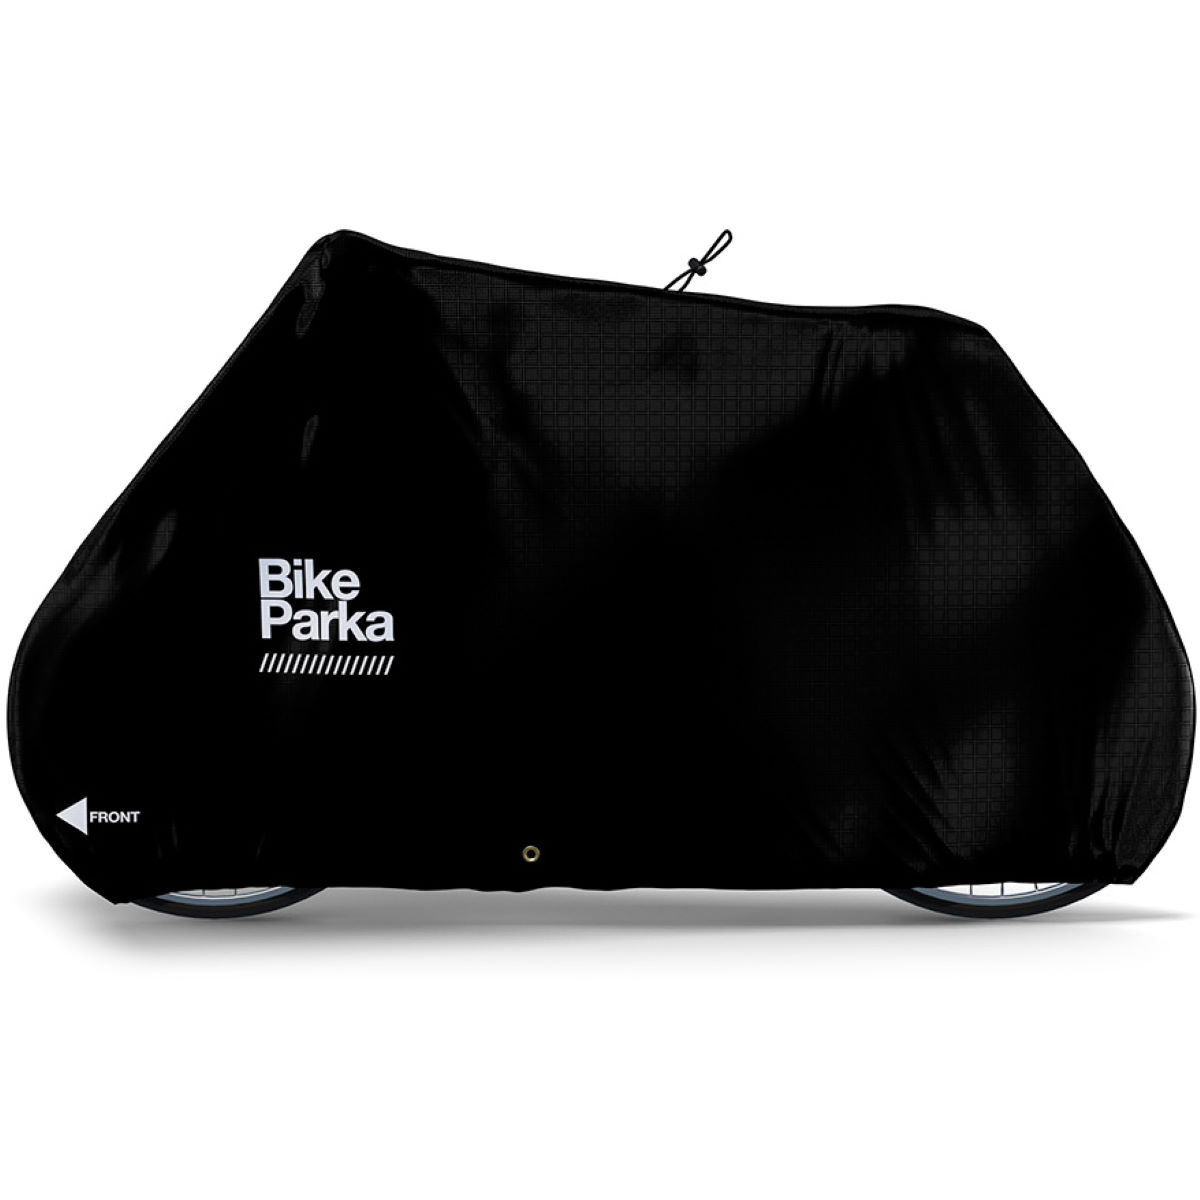 BikeParka BikeParka The Stash Bike Cover   Bike Covers